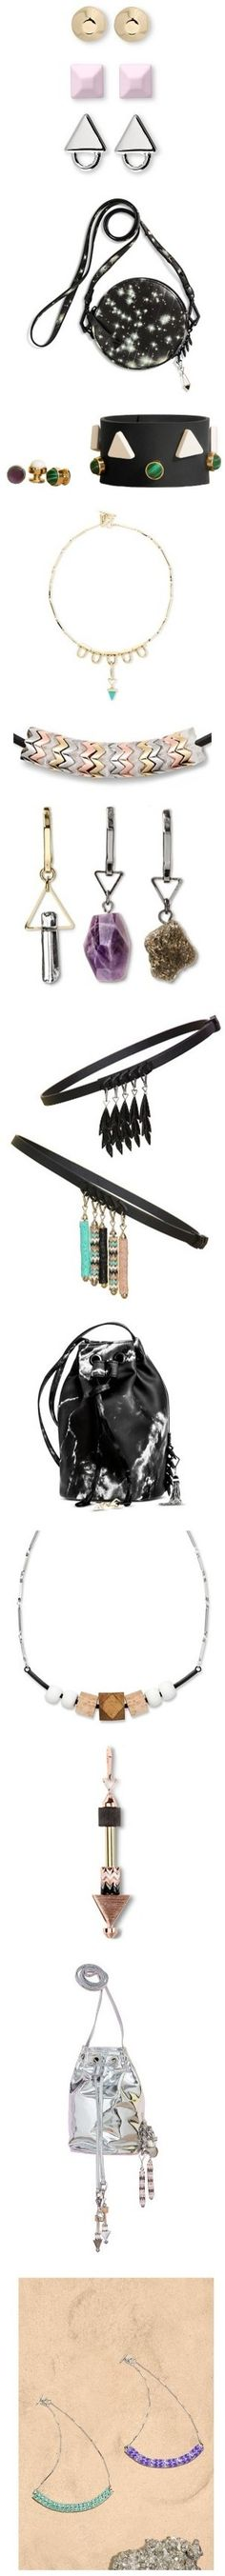 """""""Hot Accessories Collab: Eddie Borgo x Target"""" by polyvore-editorial ❤ liked on Polyvore"""